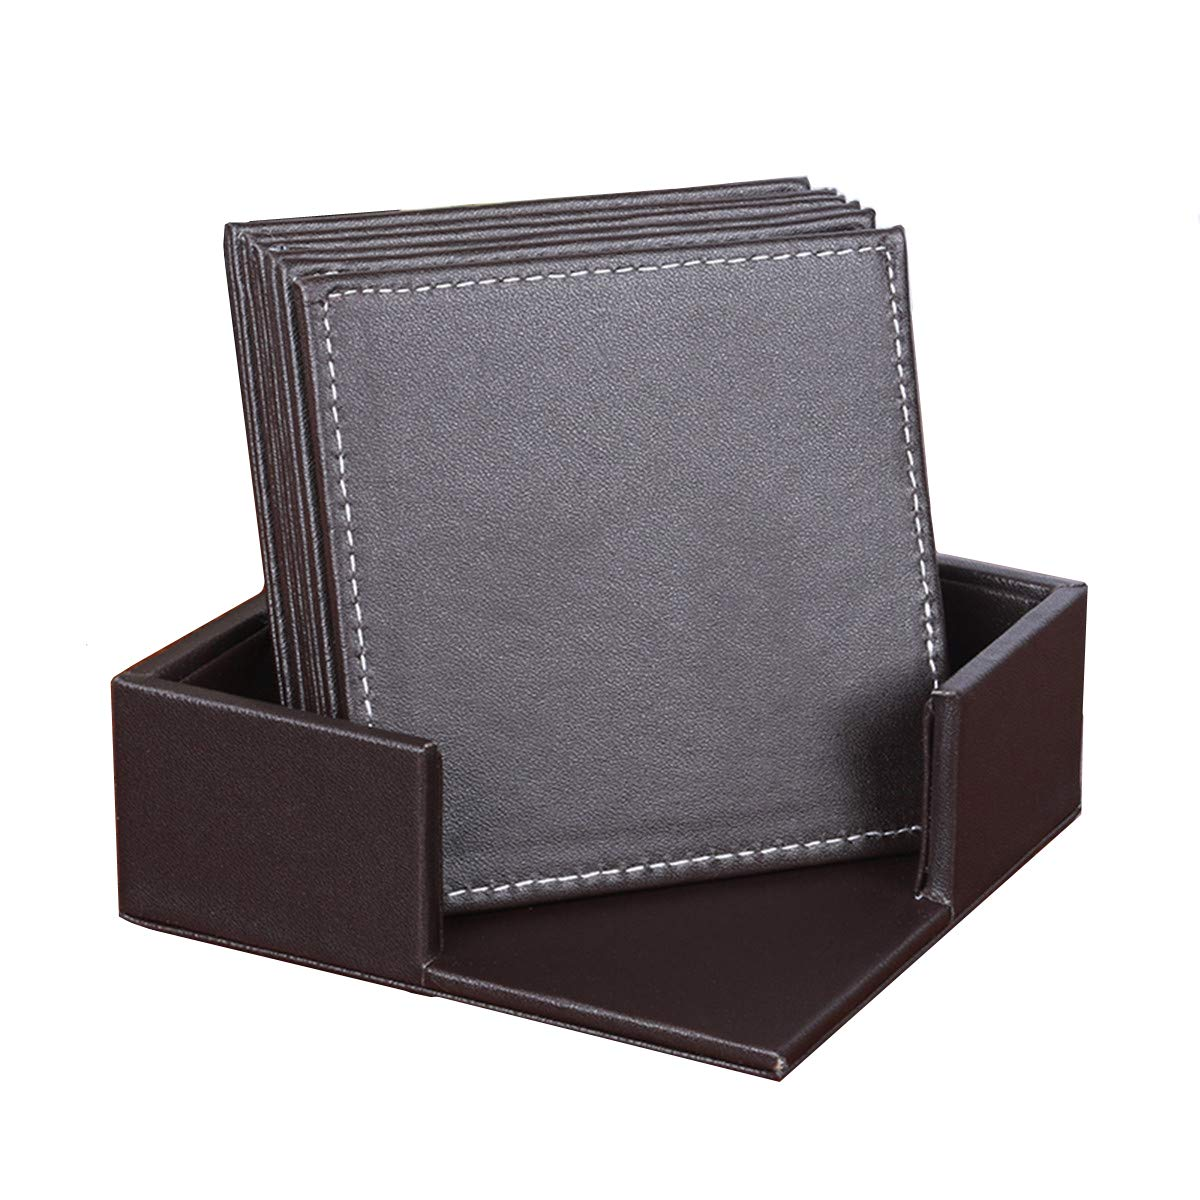 XINFU Coasters Classic Pattern PU Leather Drink Coasters Set of 6 with Holder Square Cup Mat